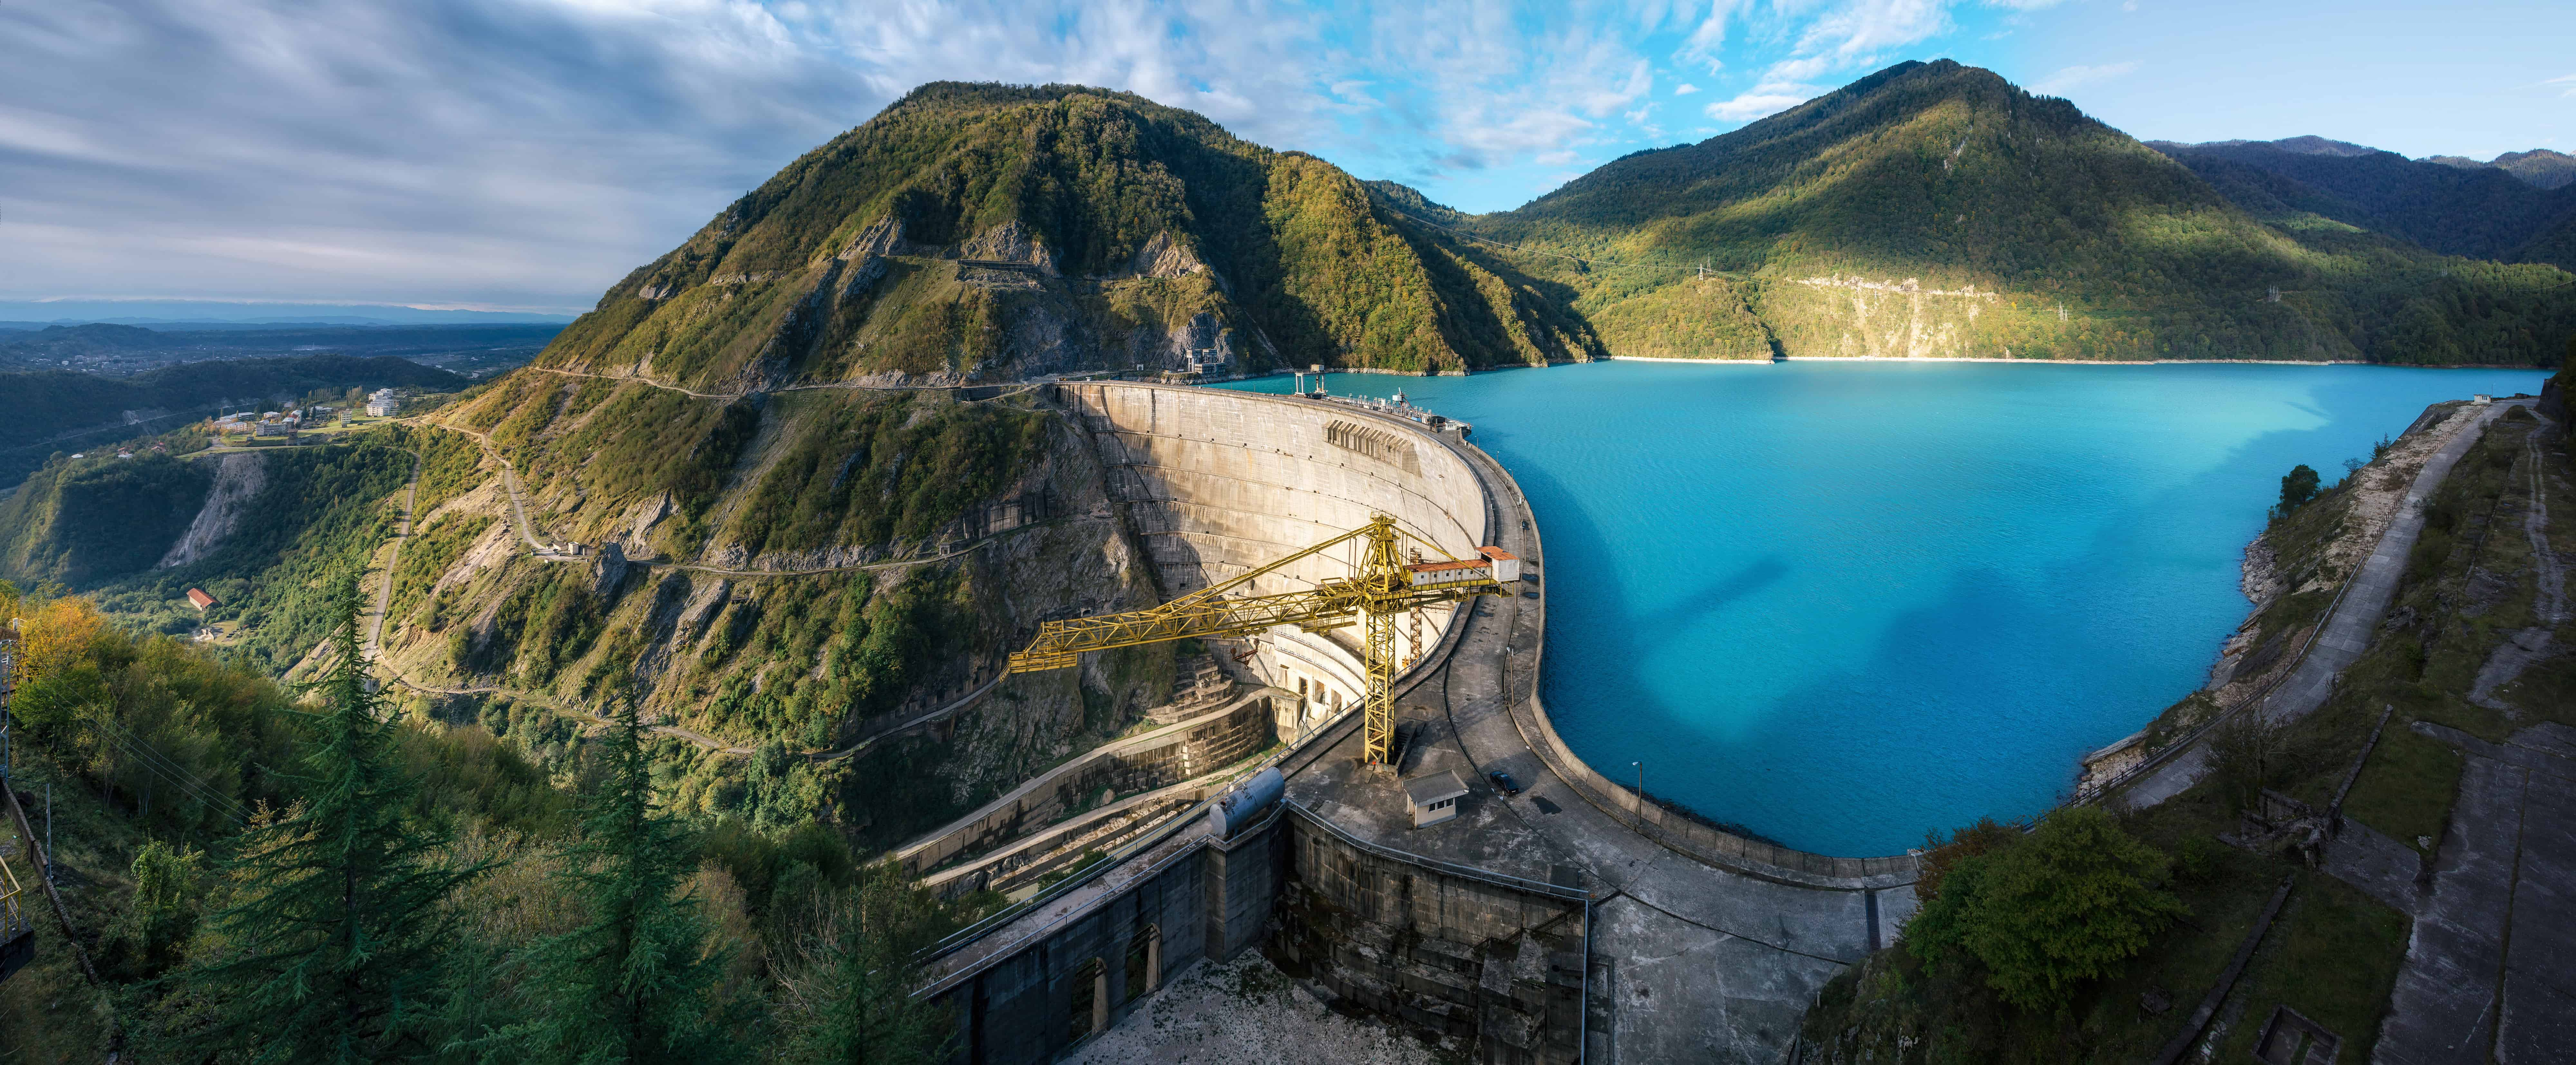 Do large dams benefit the environment?